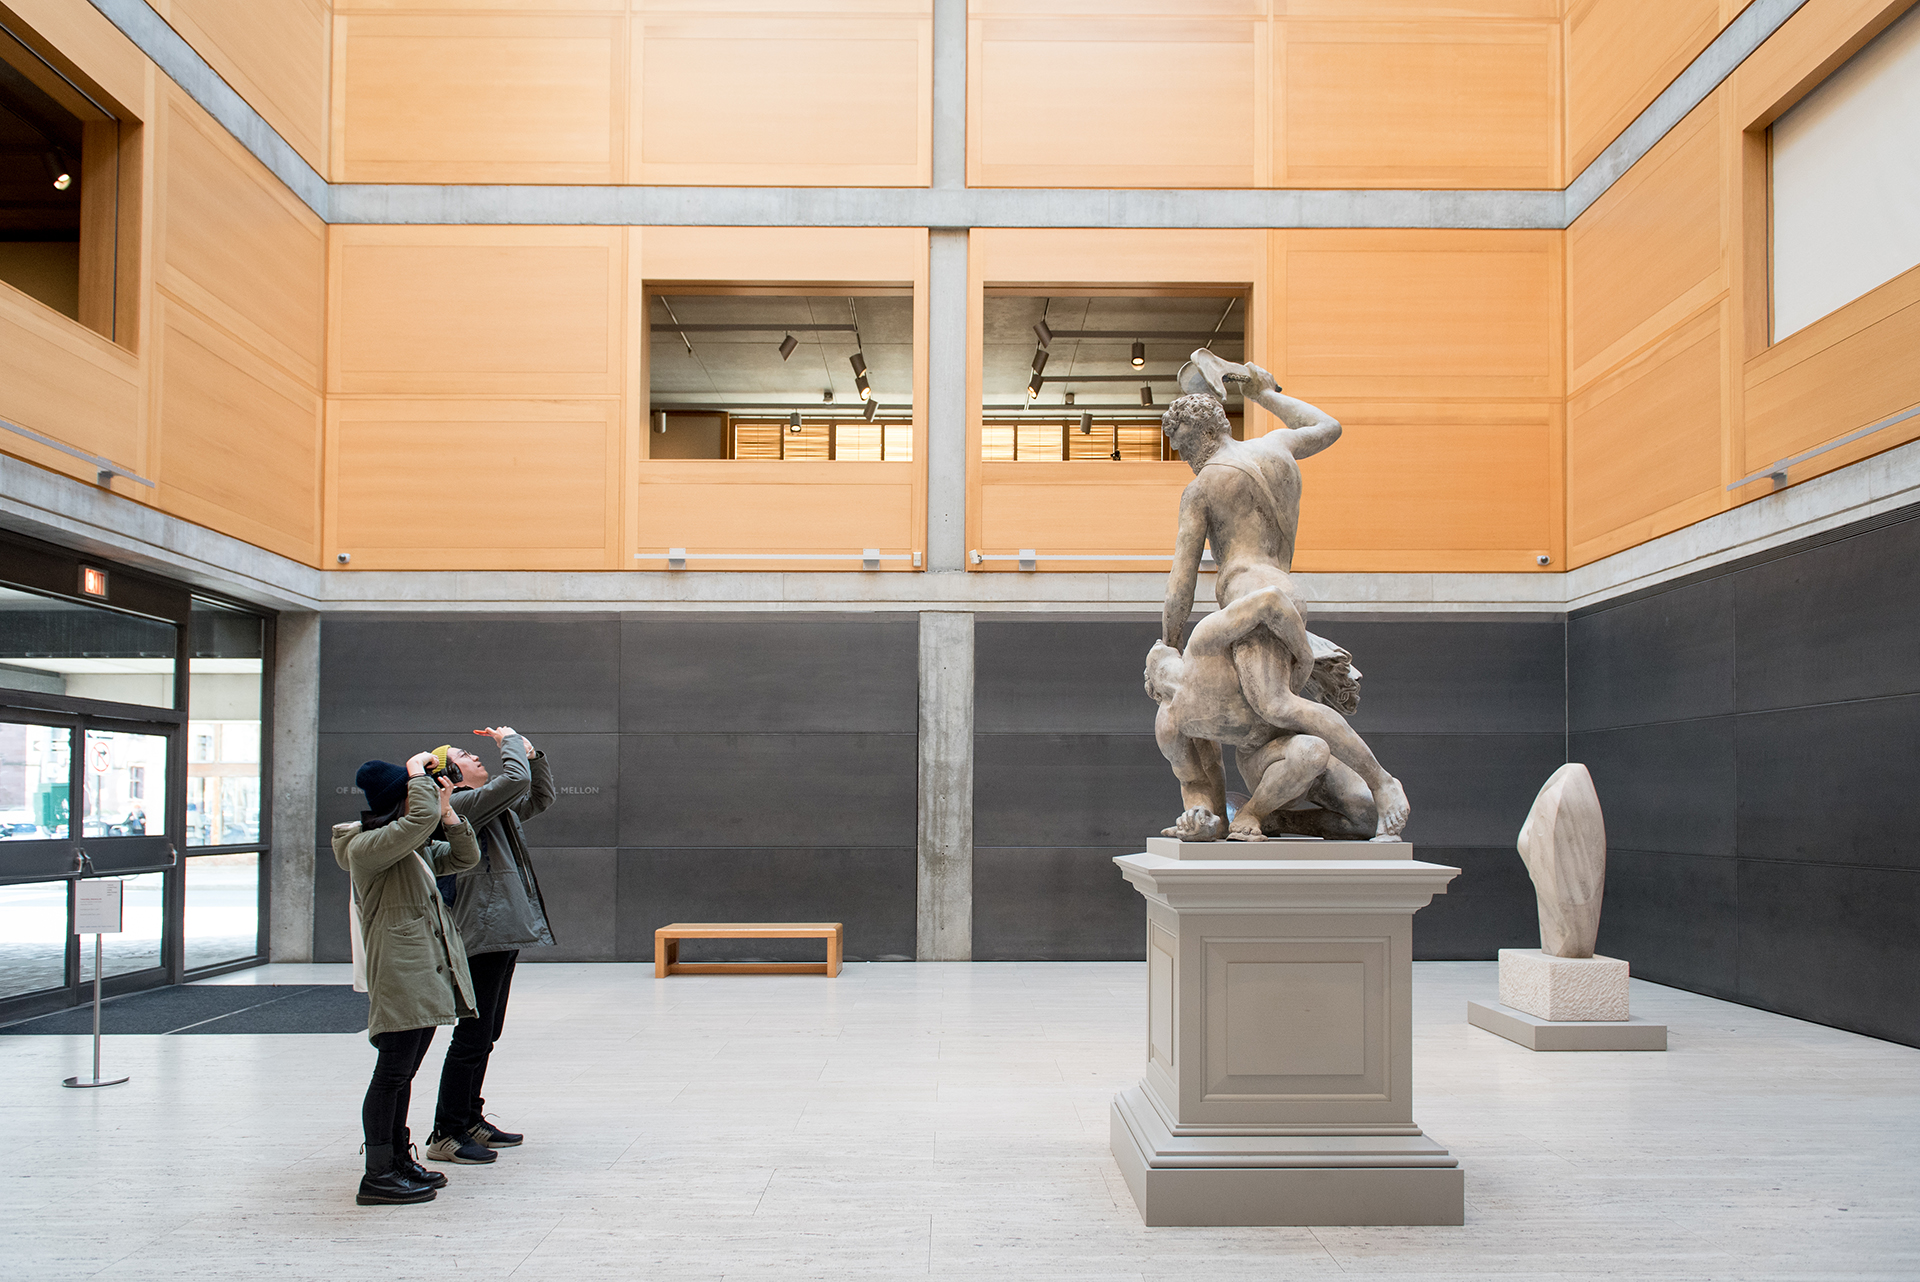 Visitors in the Entrance Court, Yale Center for British Art, photo by Stephanie Anestis